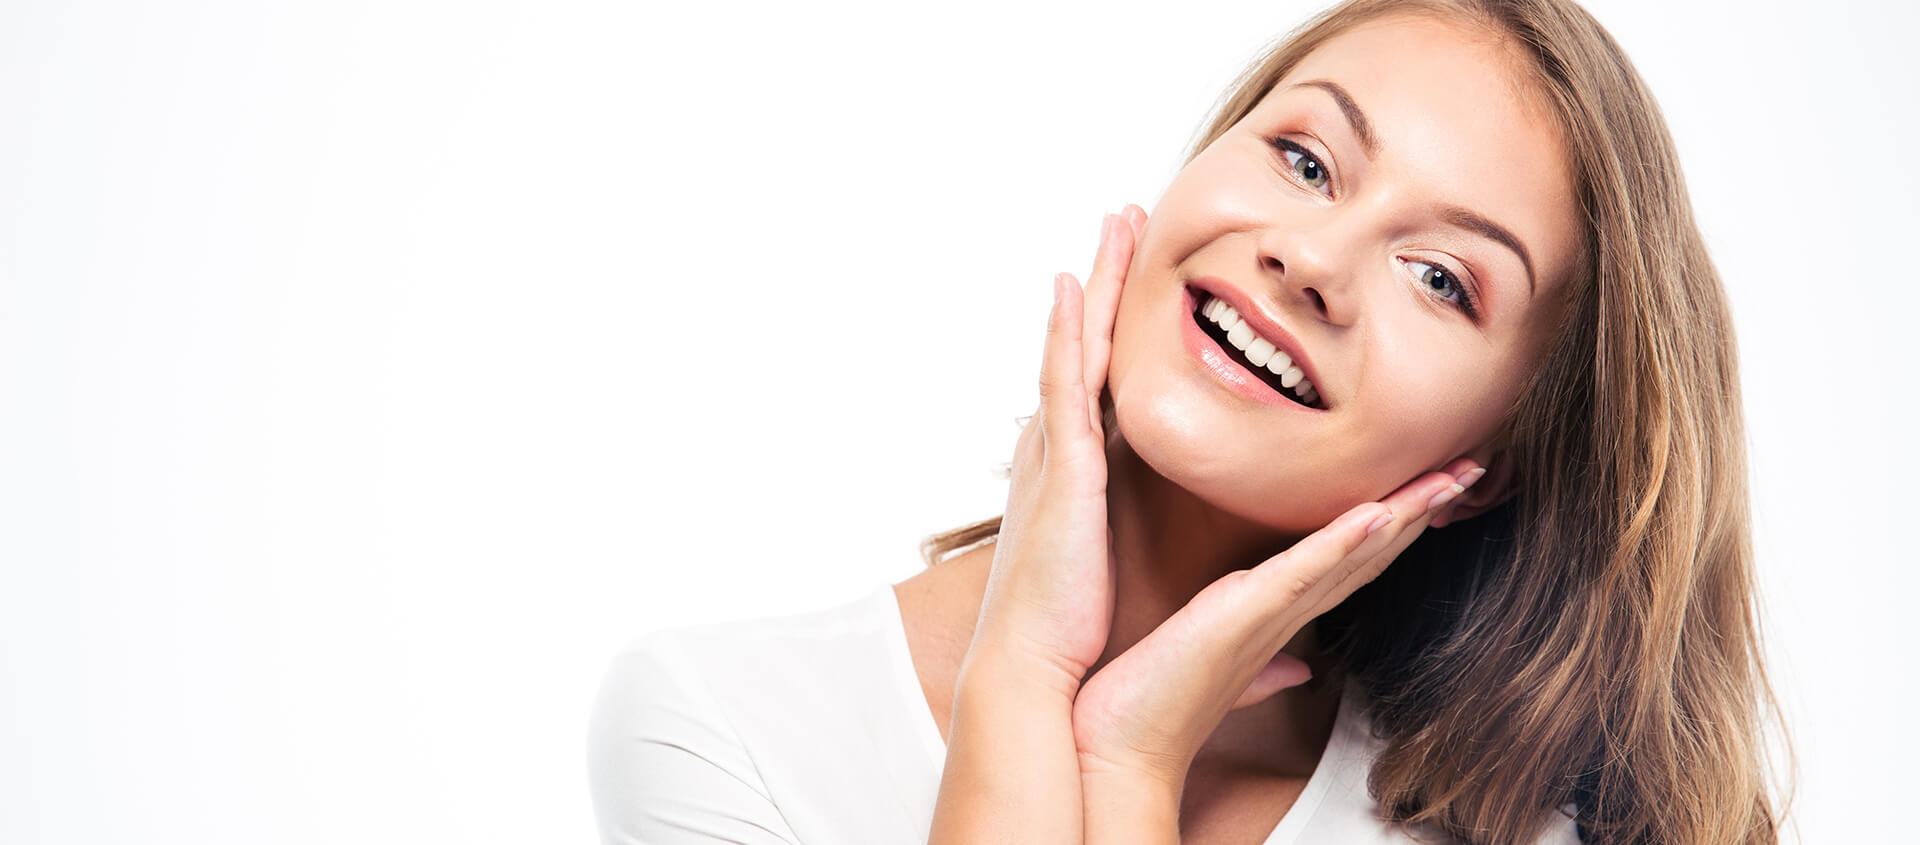 Clear Braces Offer Customizable Alignment Invisible to the Naked Eye in Middletown IN Area